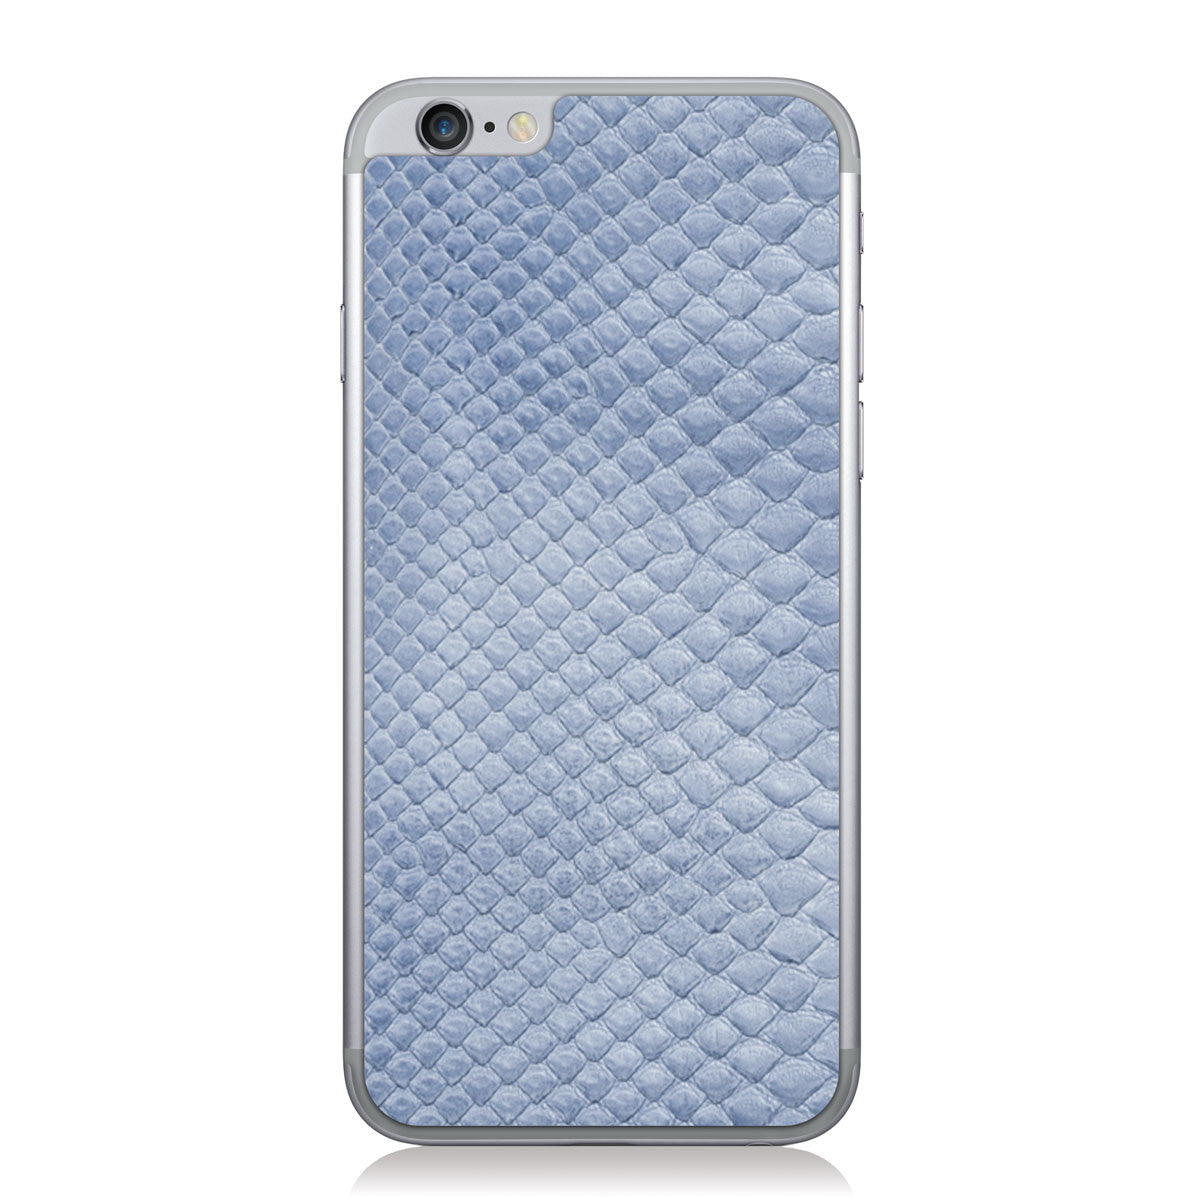 Sea Python Back iPhone 6/6s Leather Skin